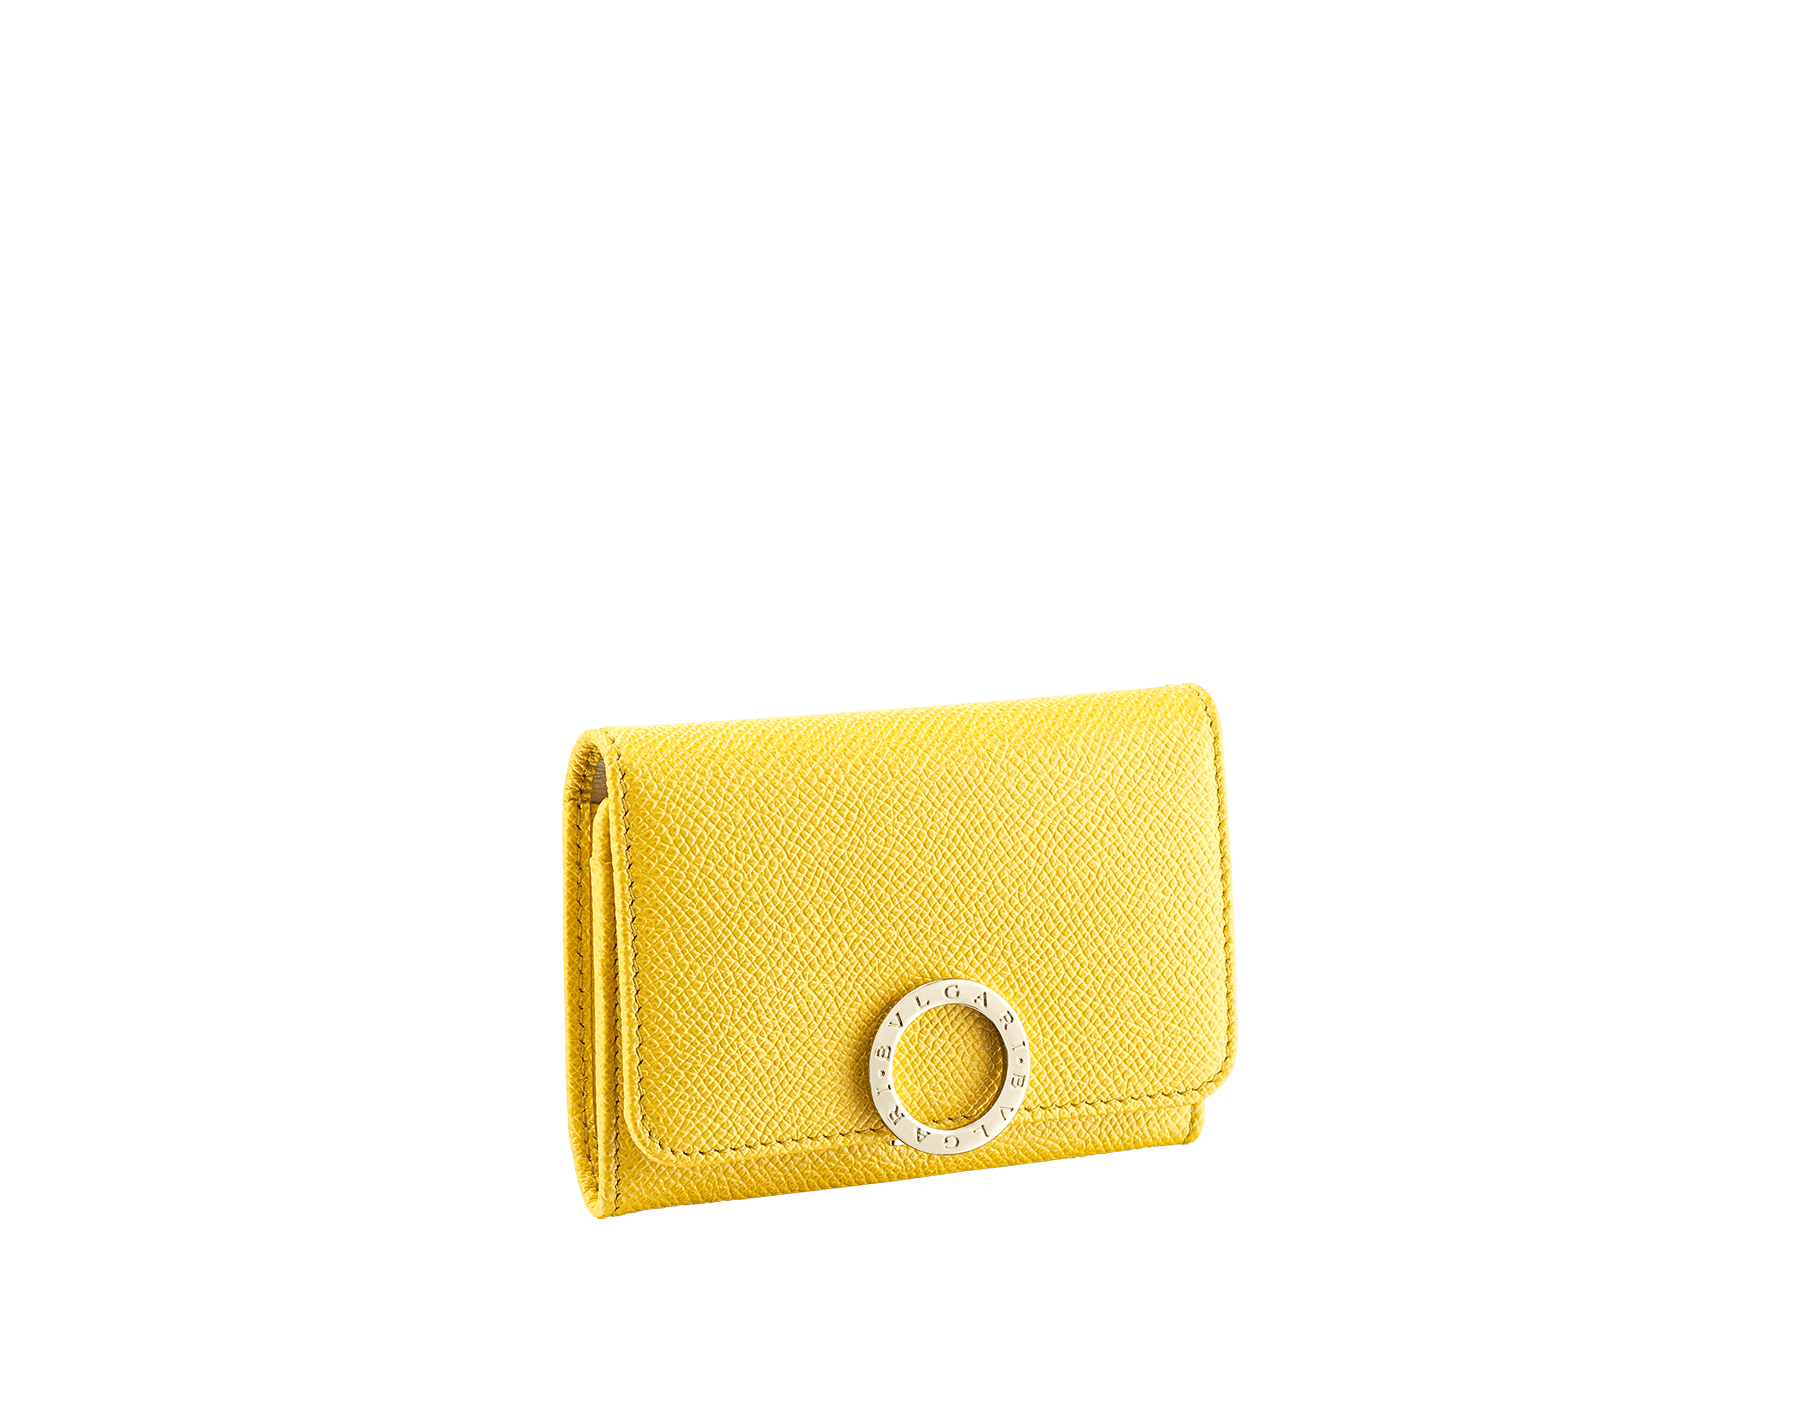 """BVLGARI BVLGARI"" business card holder in mint bright grain calf leather and taffy quartz nappa leather. Iconic logo clip closure in light gold plated brass. 579-BC-HOLDER-BGCLc image 1"